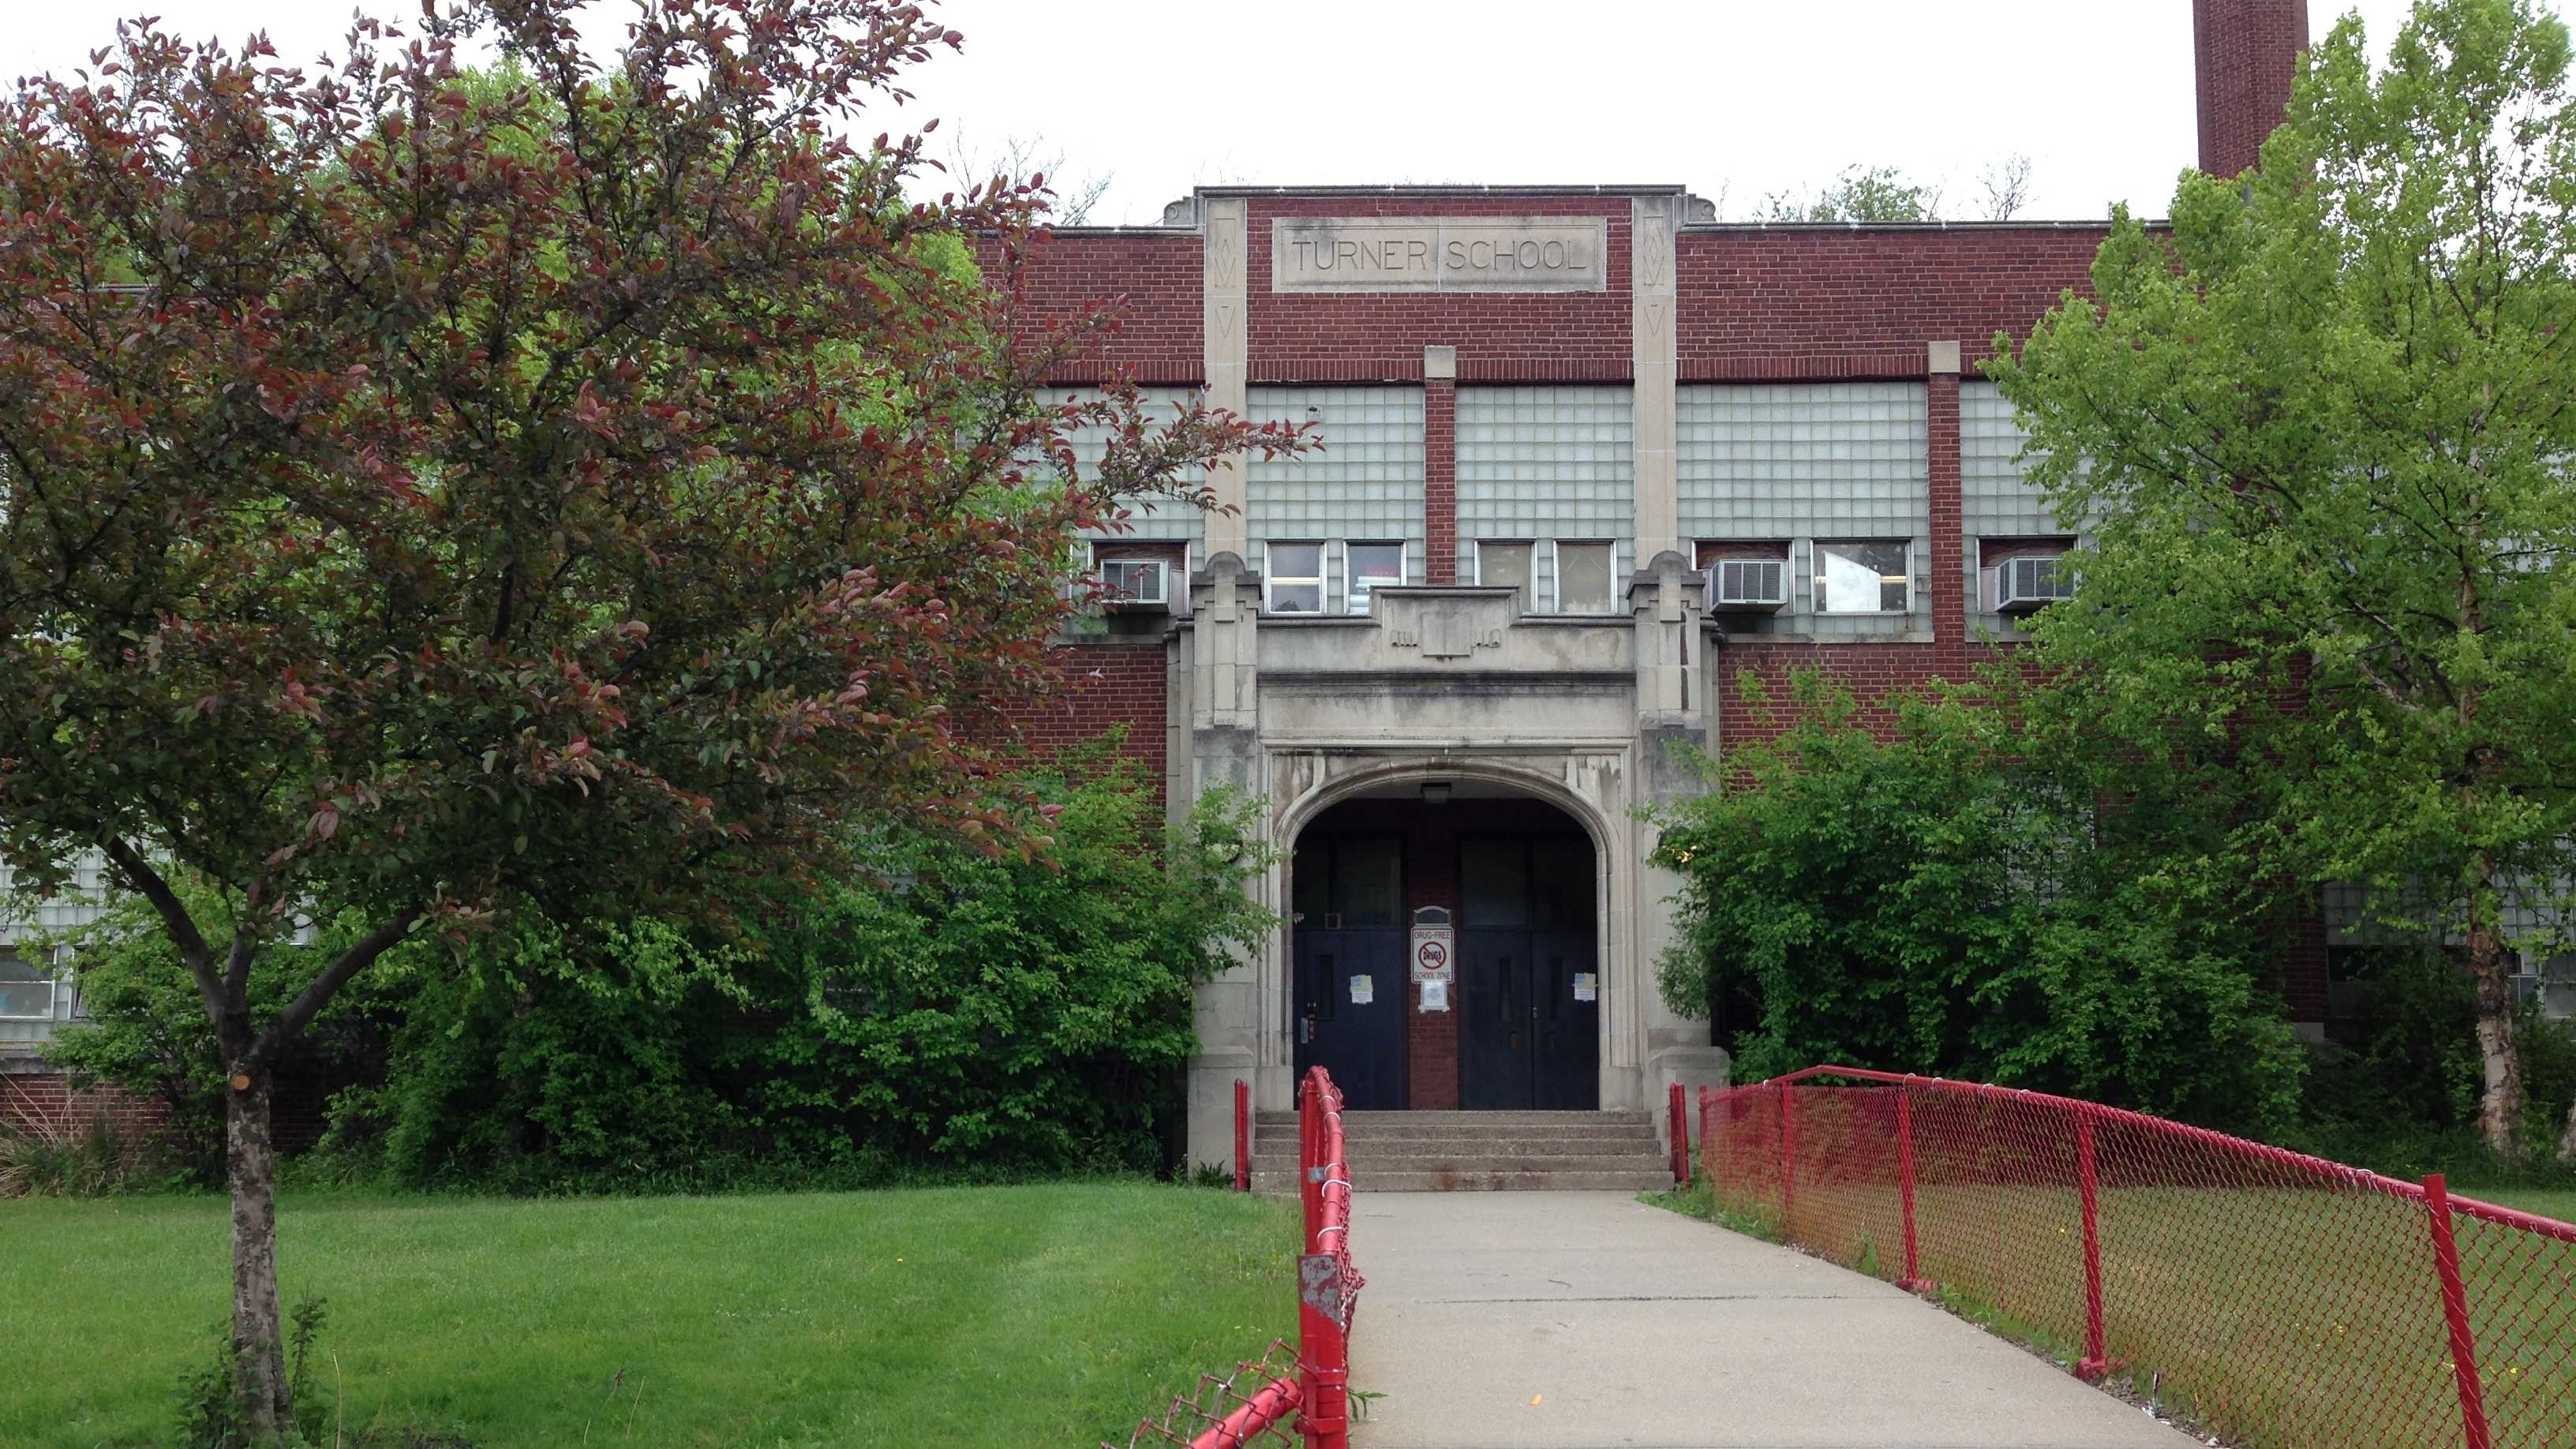 Turner Elementary School in Wilkinsburg